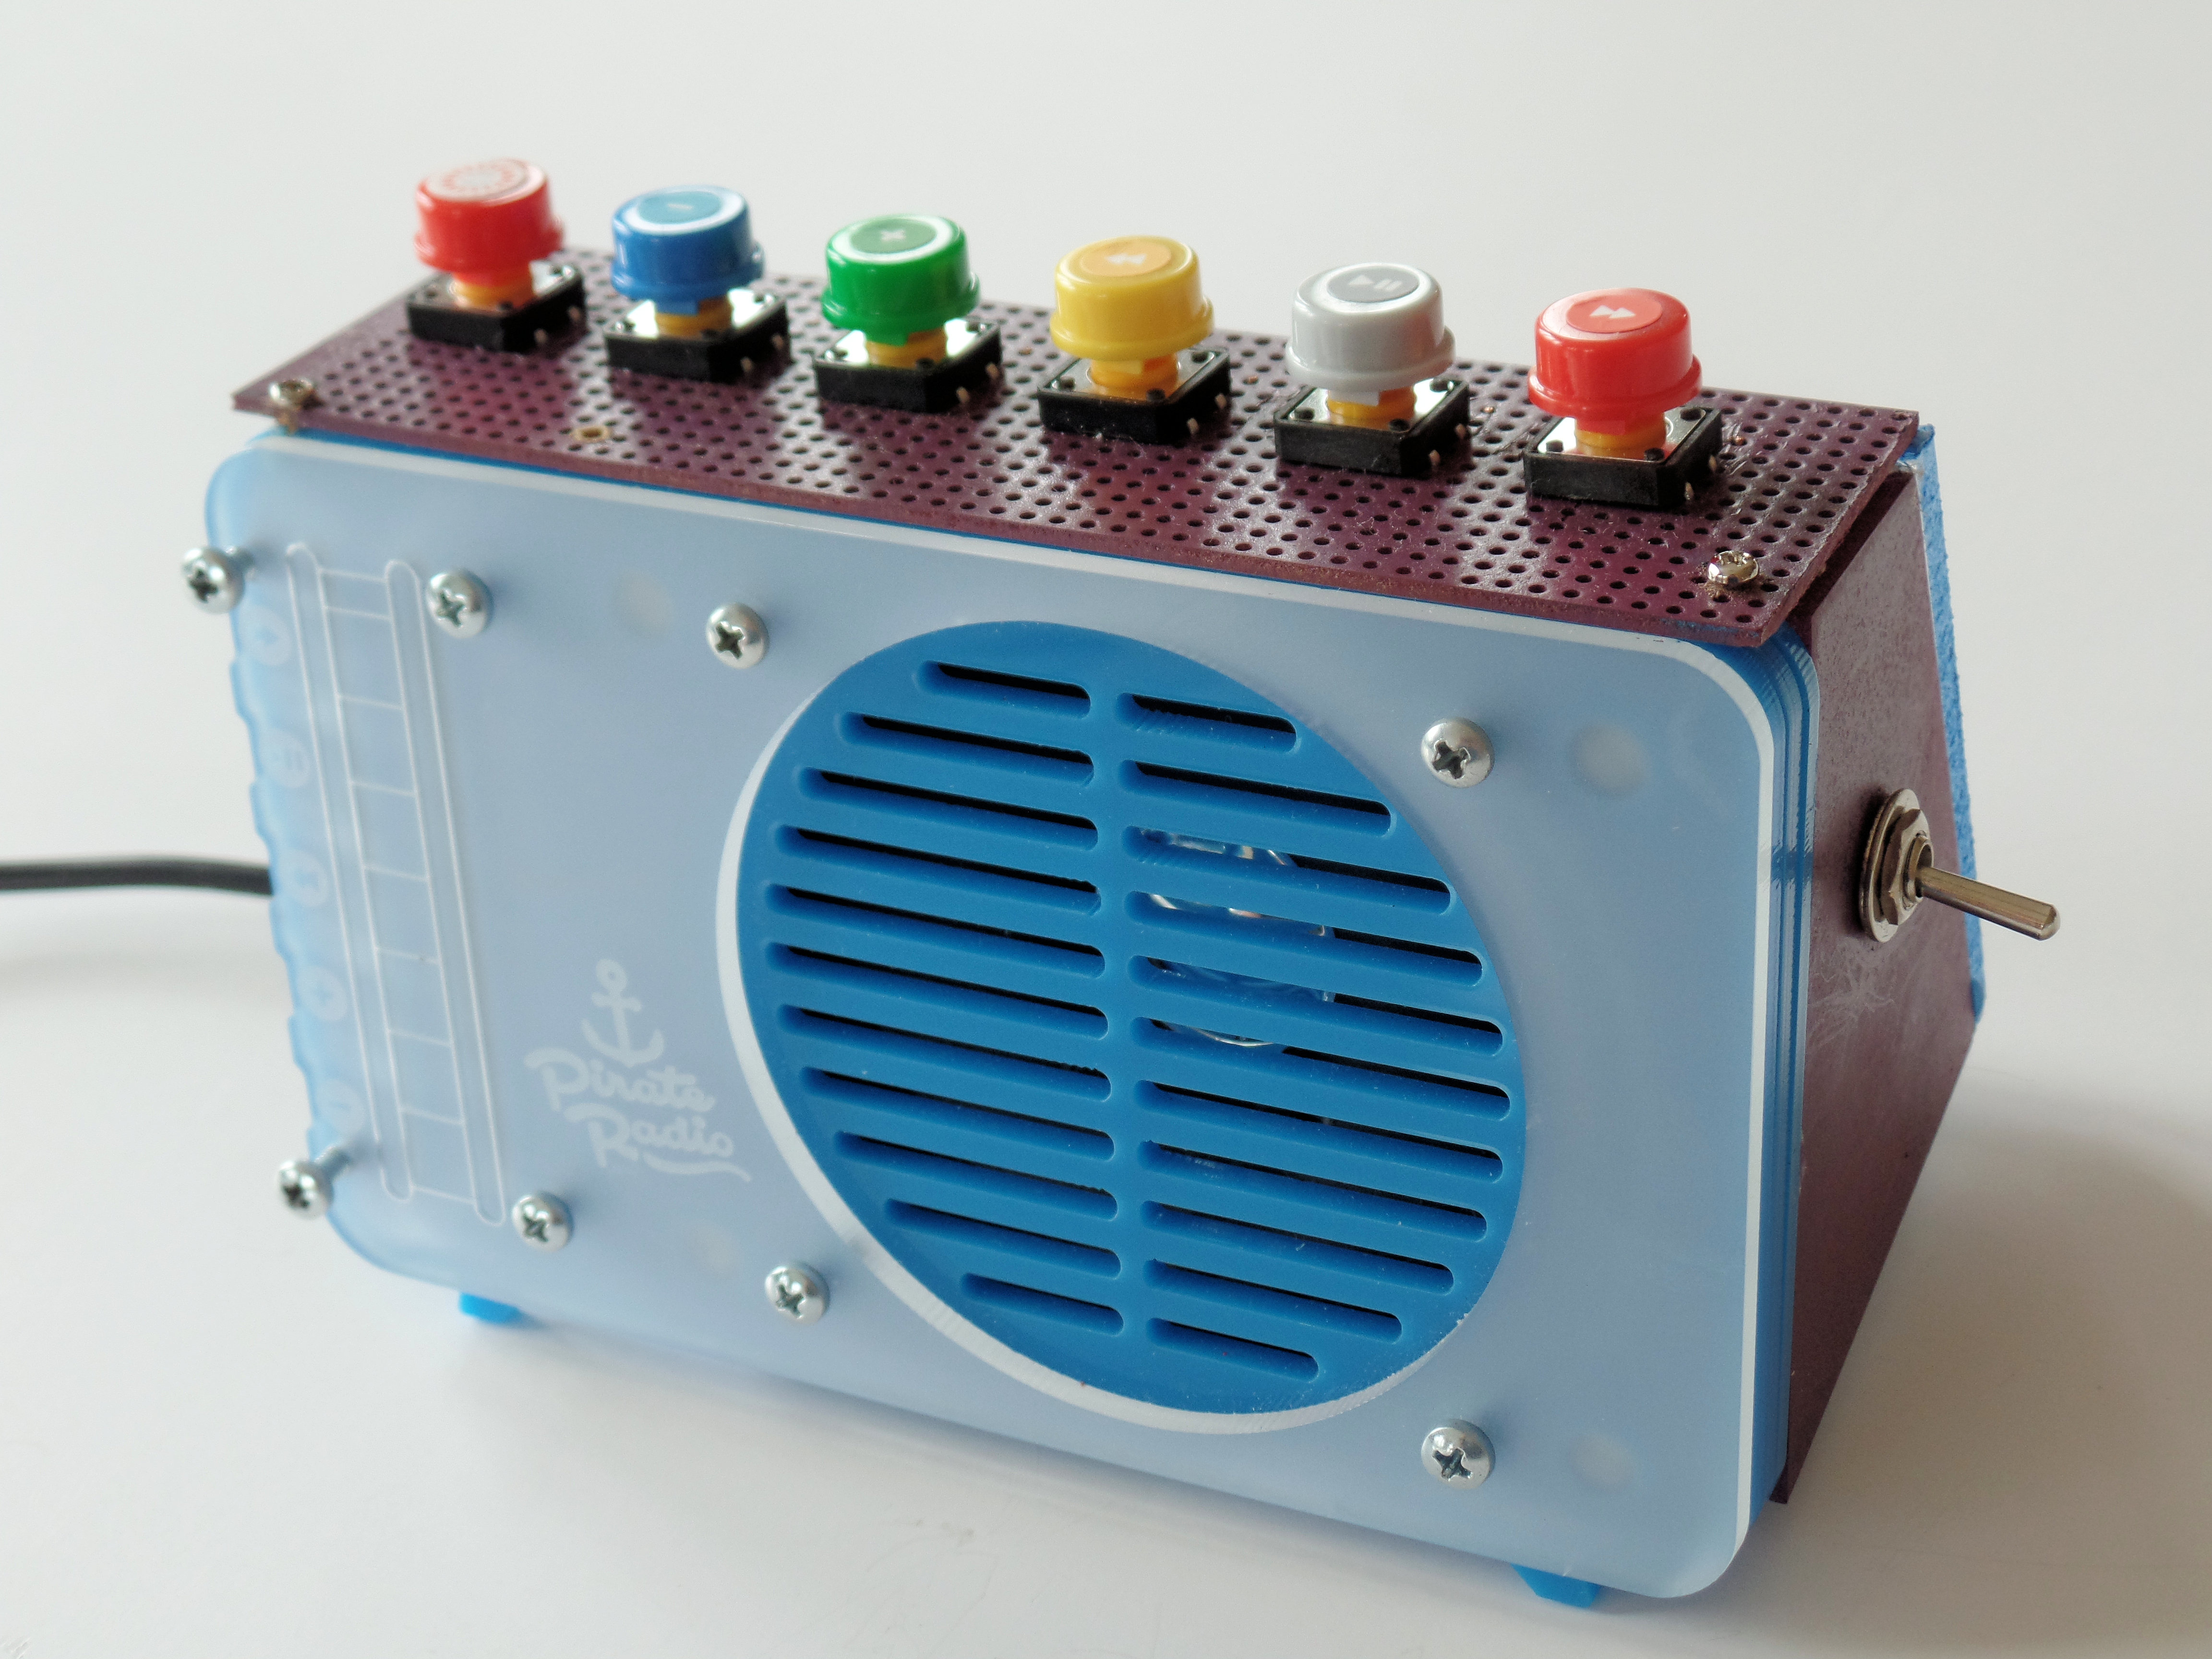 Mod My Pirate Radio: 15 Steps (with Pictures)